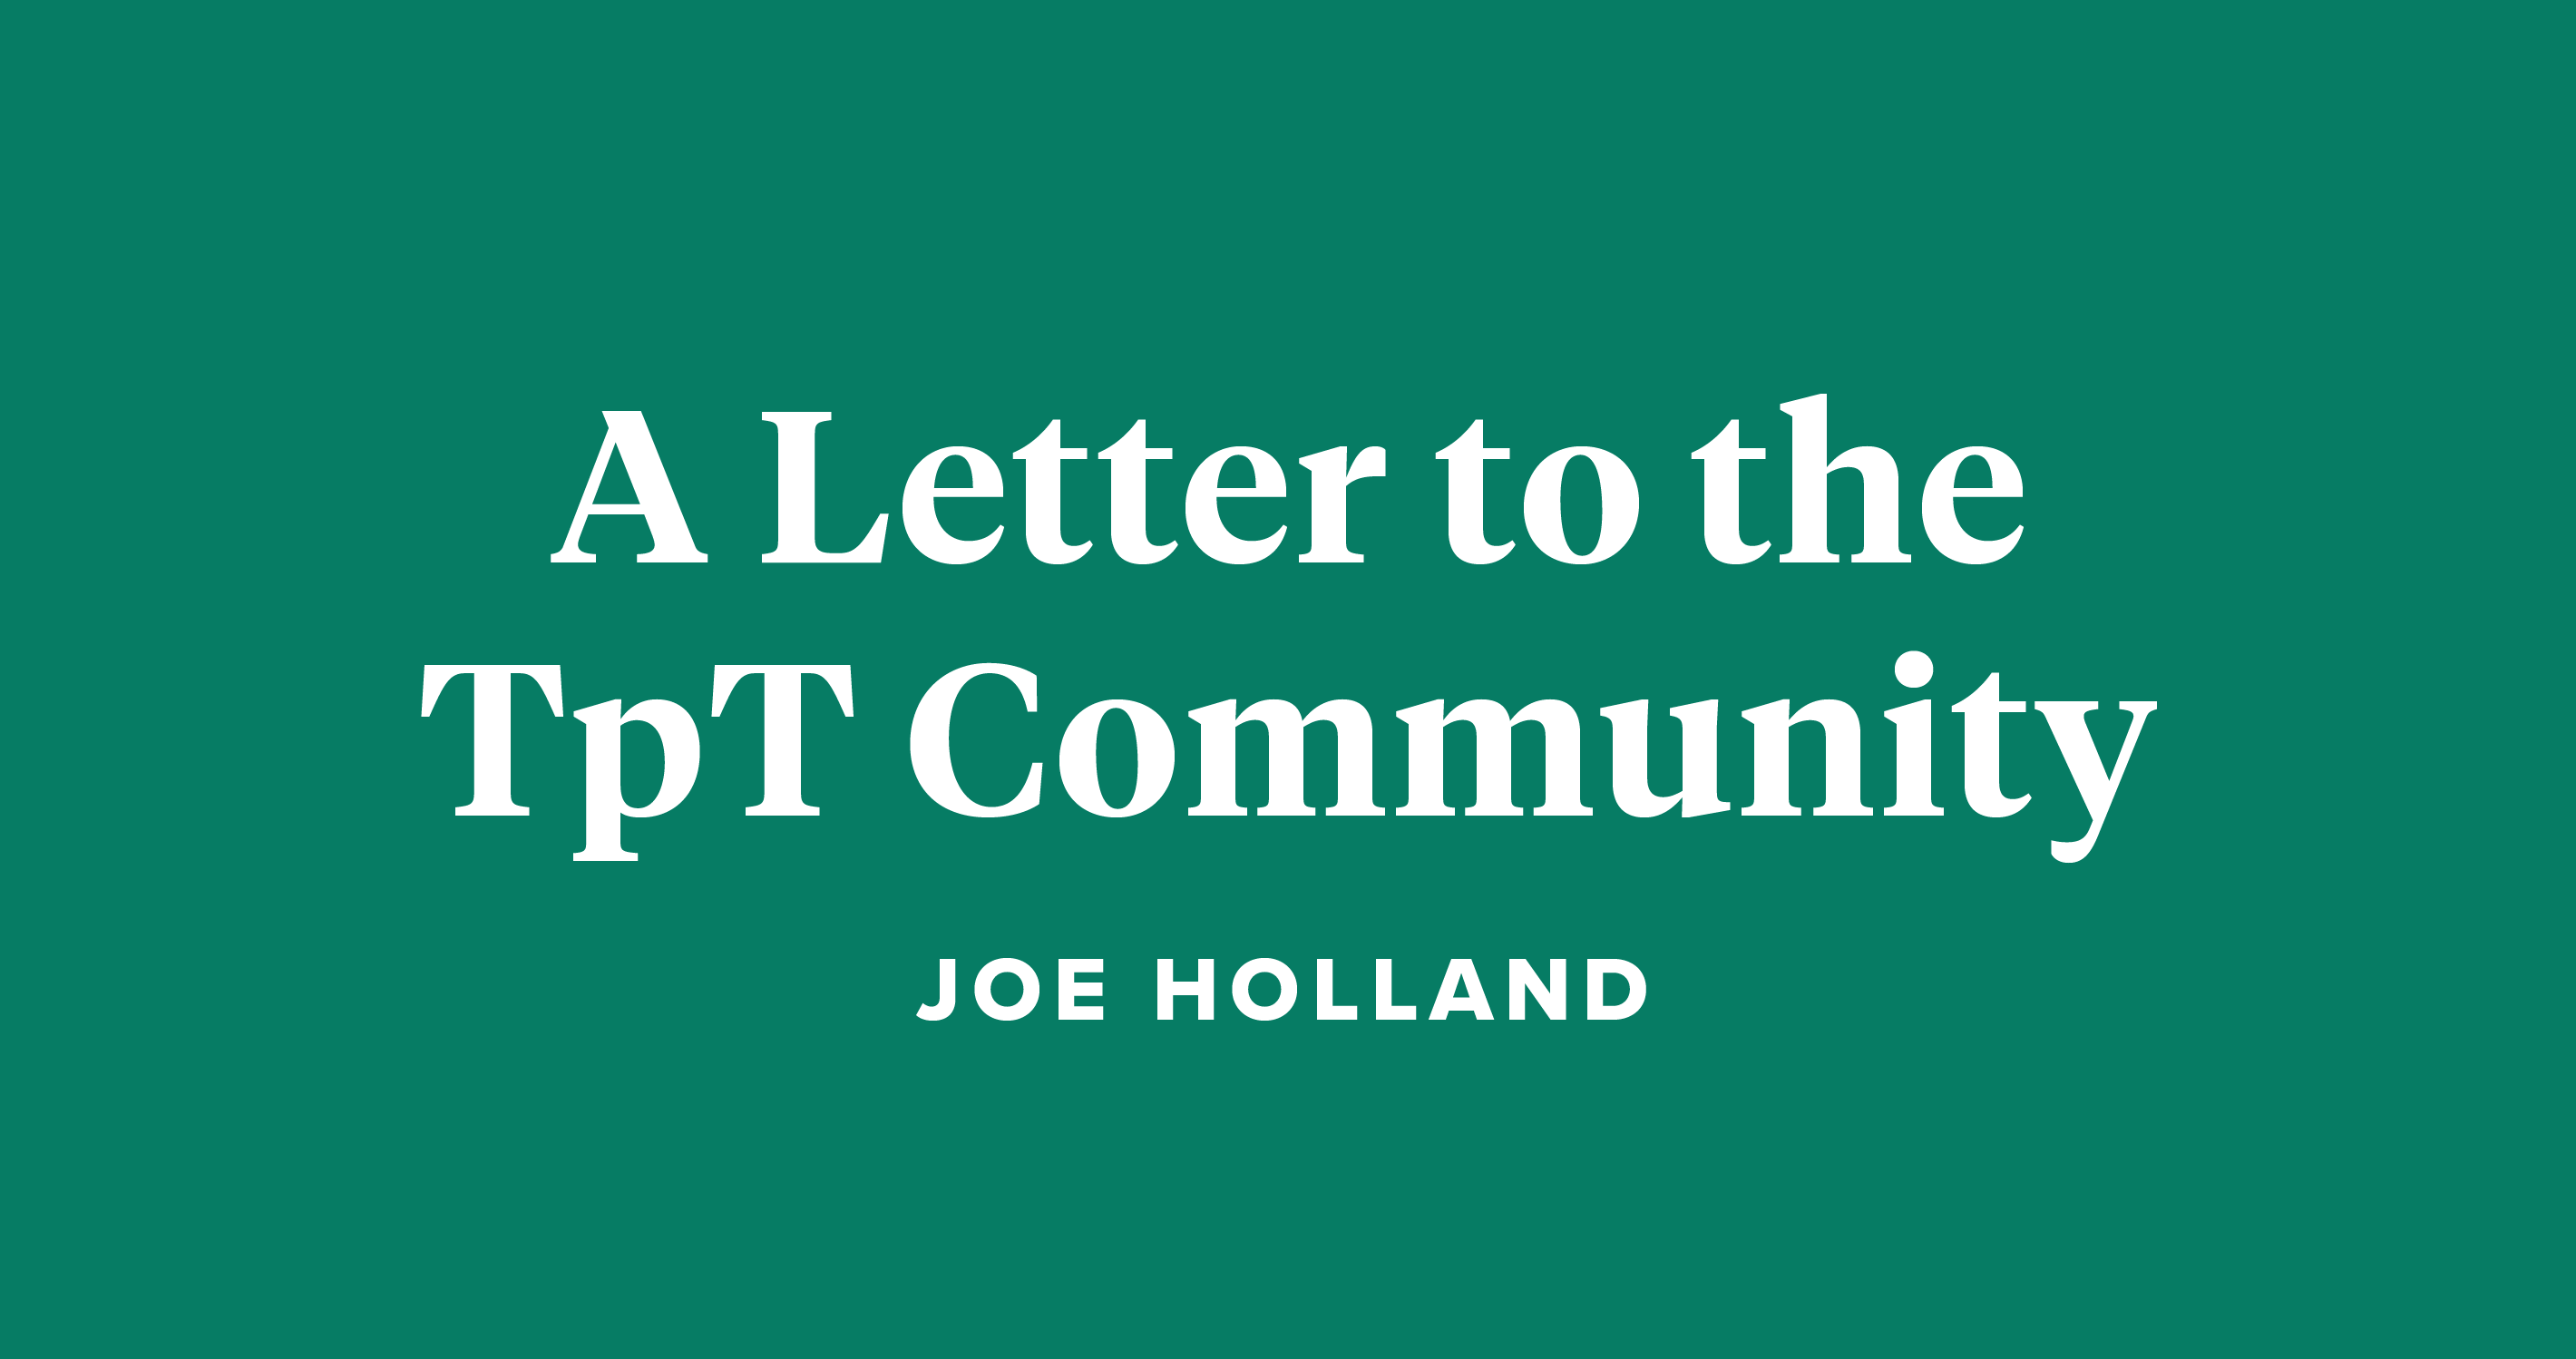 A Letter to the TpT Community Joe Holland